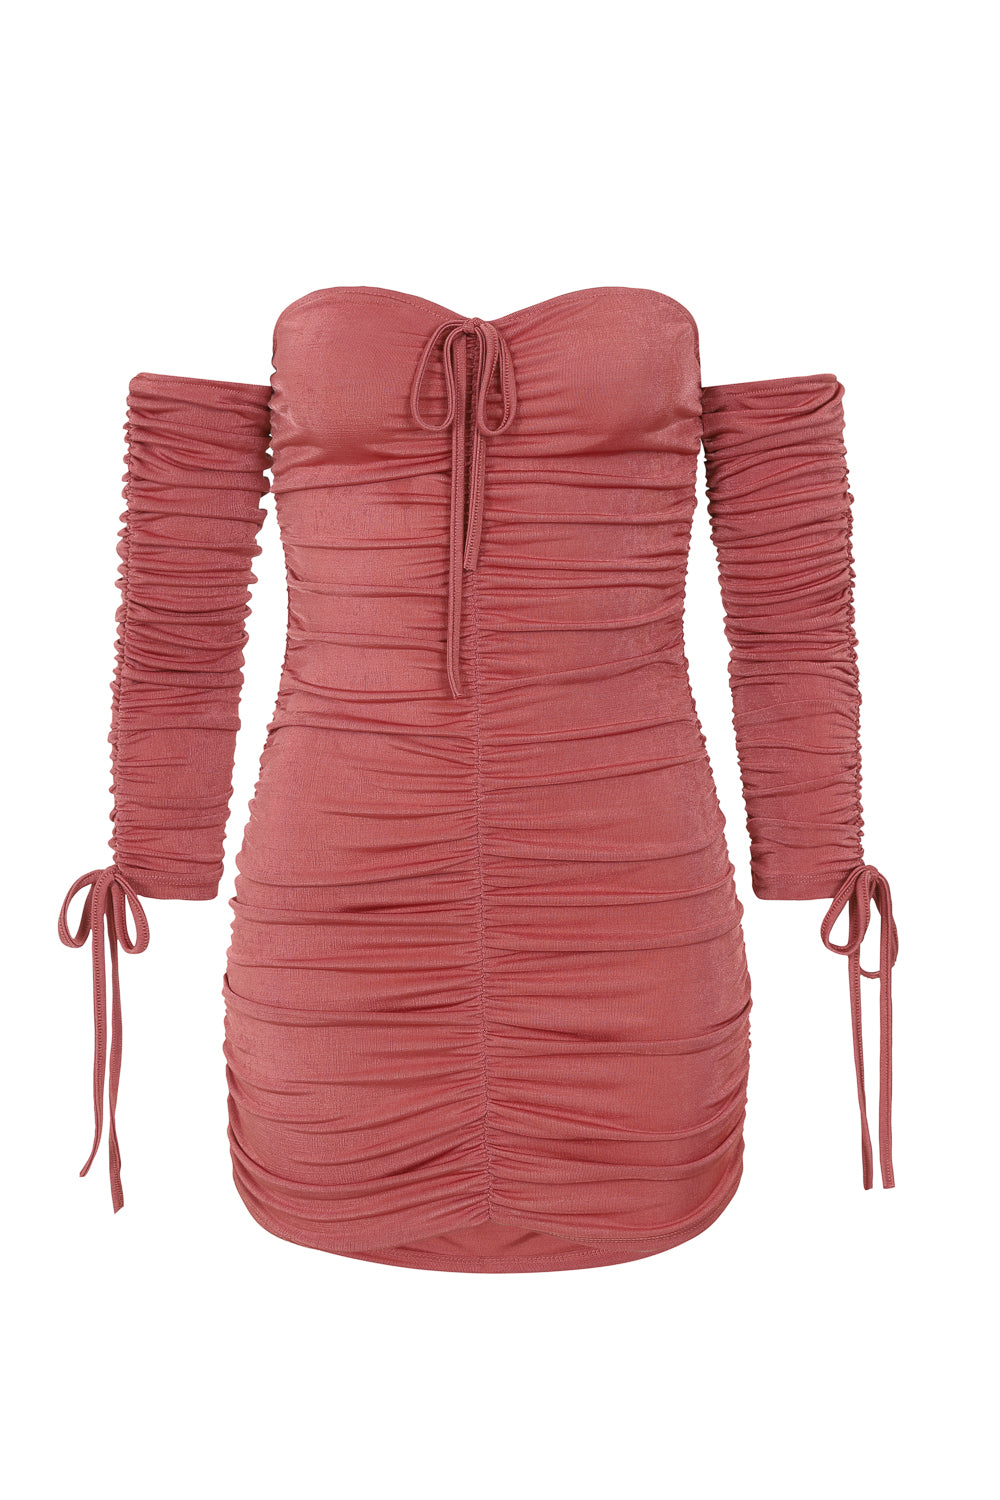 All Ruched Up Dusty Pink Off The Shoulder Long Sleeve Slinky Mini Dress